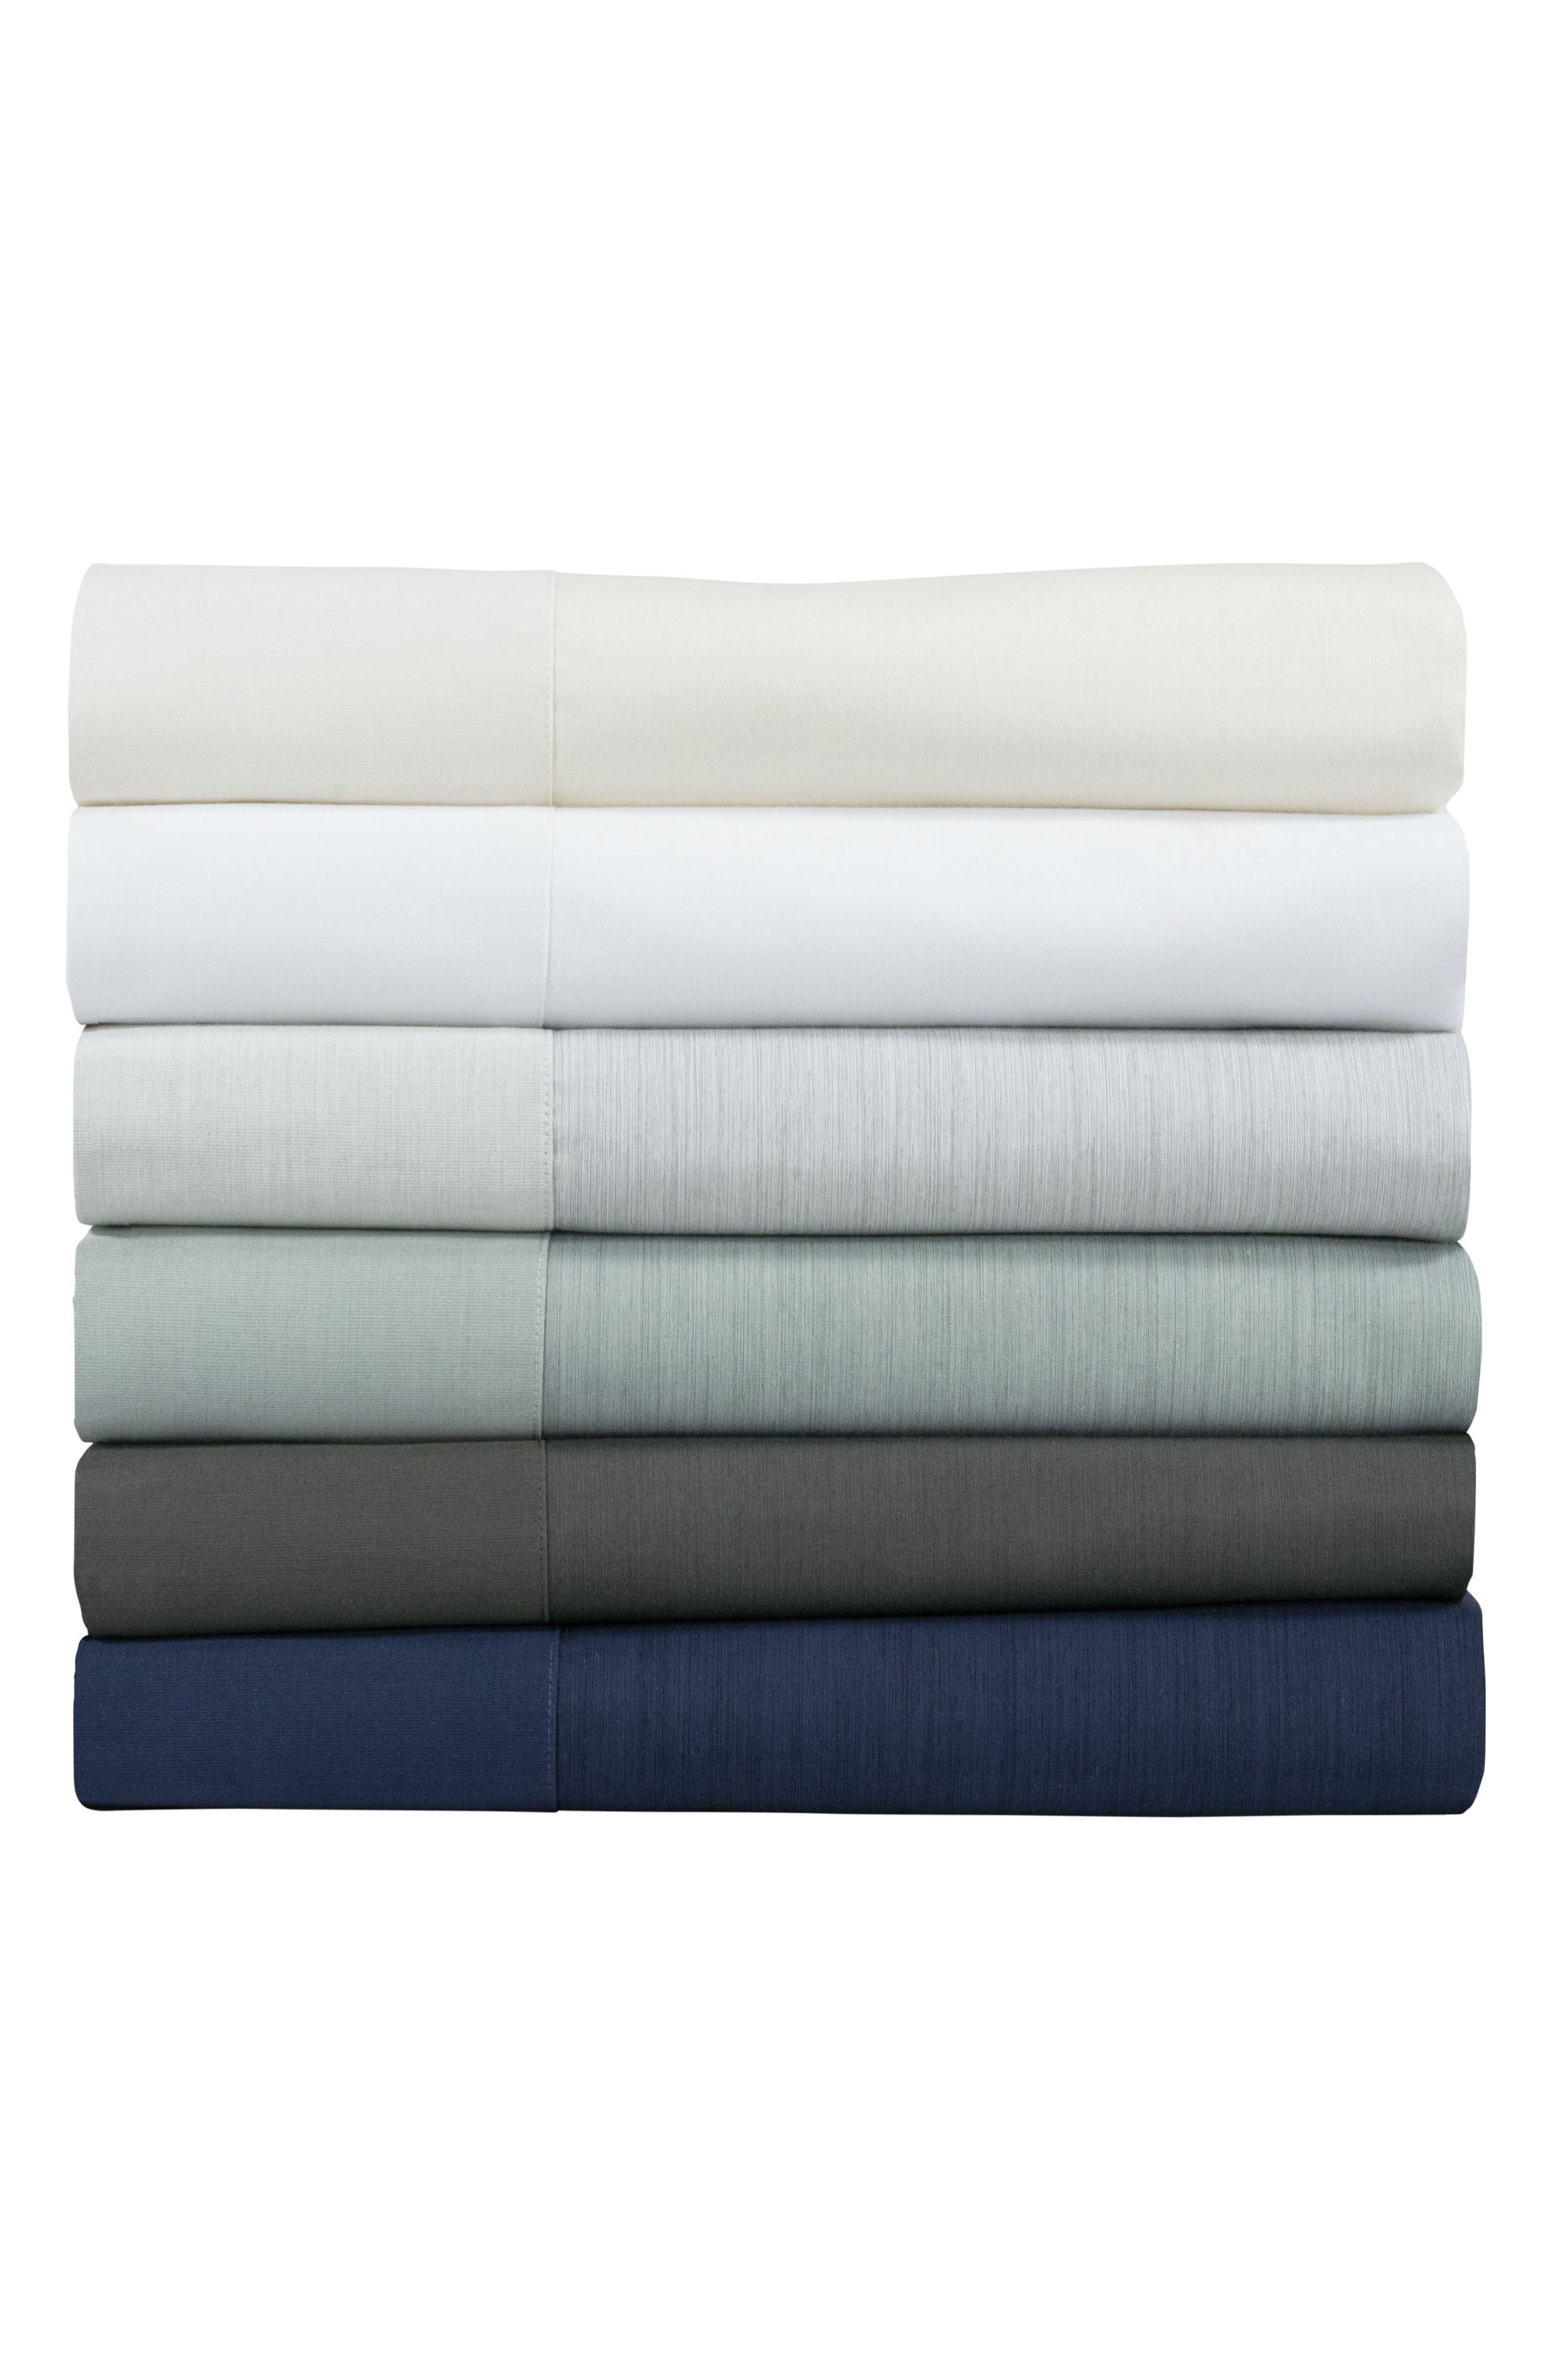 Striated Band 400 Thread Count Pillowcases,                             Alternate thumbnail 2, color,                             GRAY